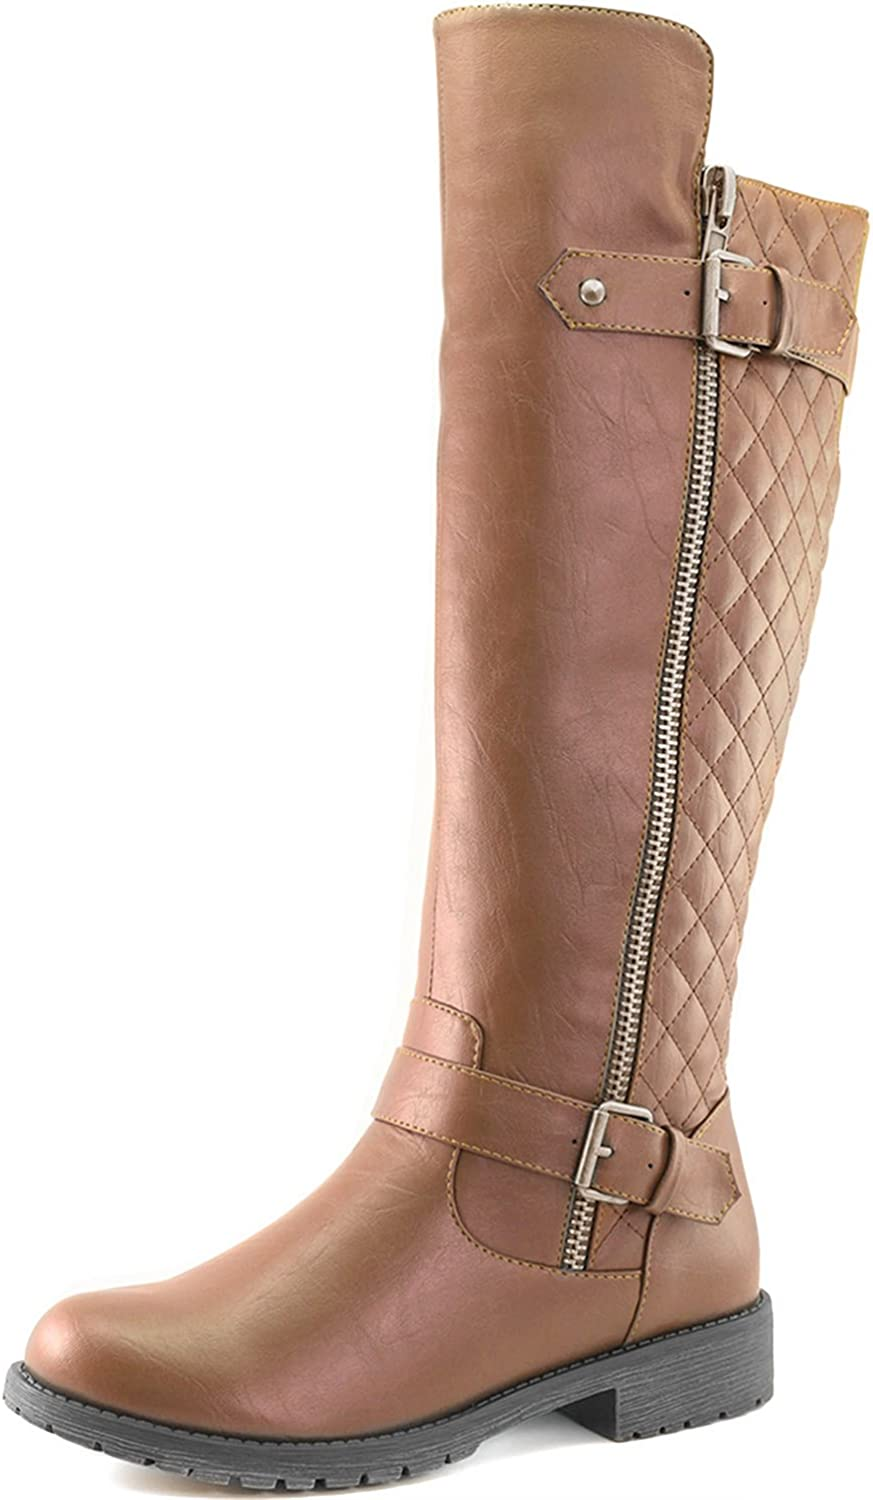 Dailyshoes Women's Quilted Round Toe Combat Rider Knee High with Side Pocket